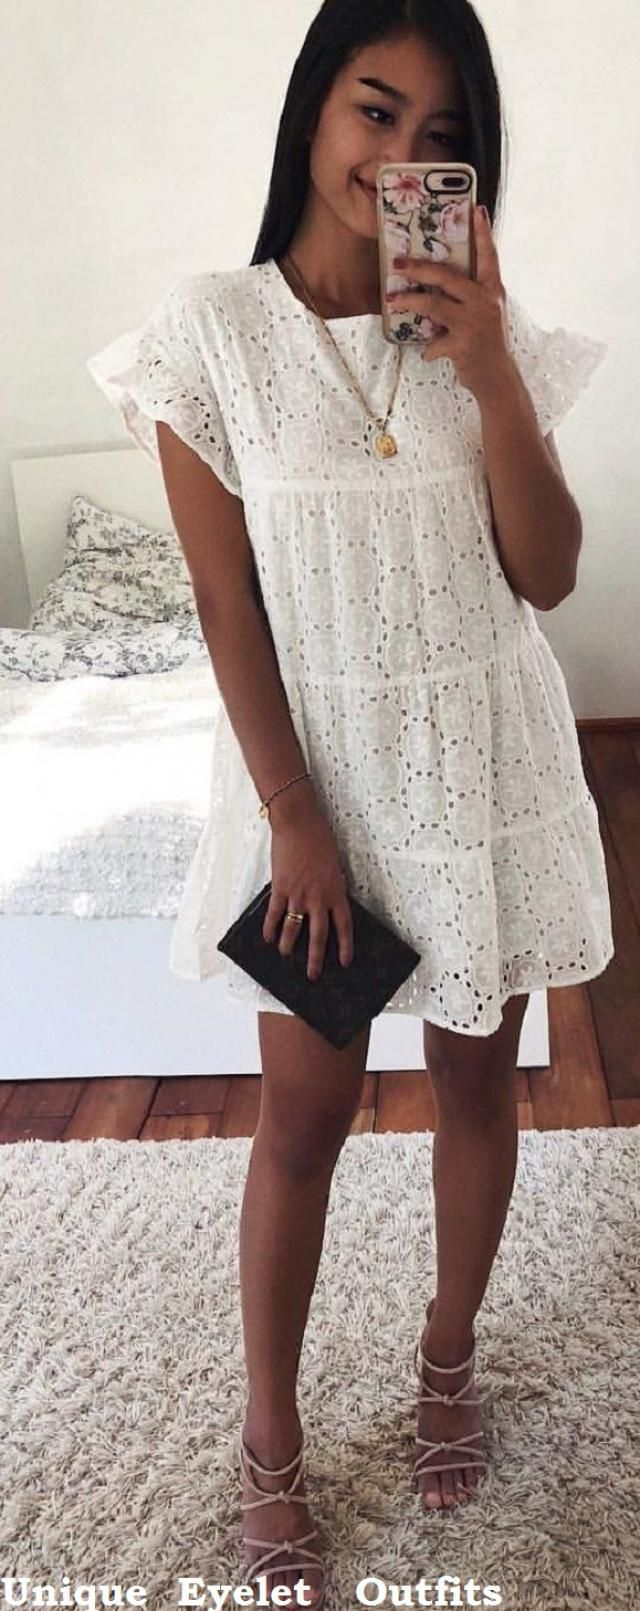 Unique Eyelet Outfits 